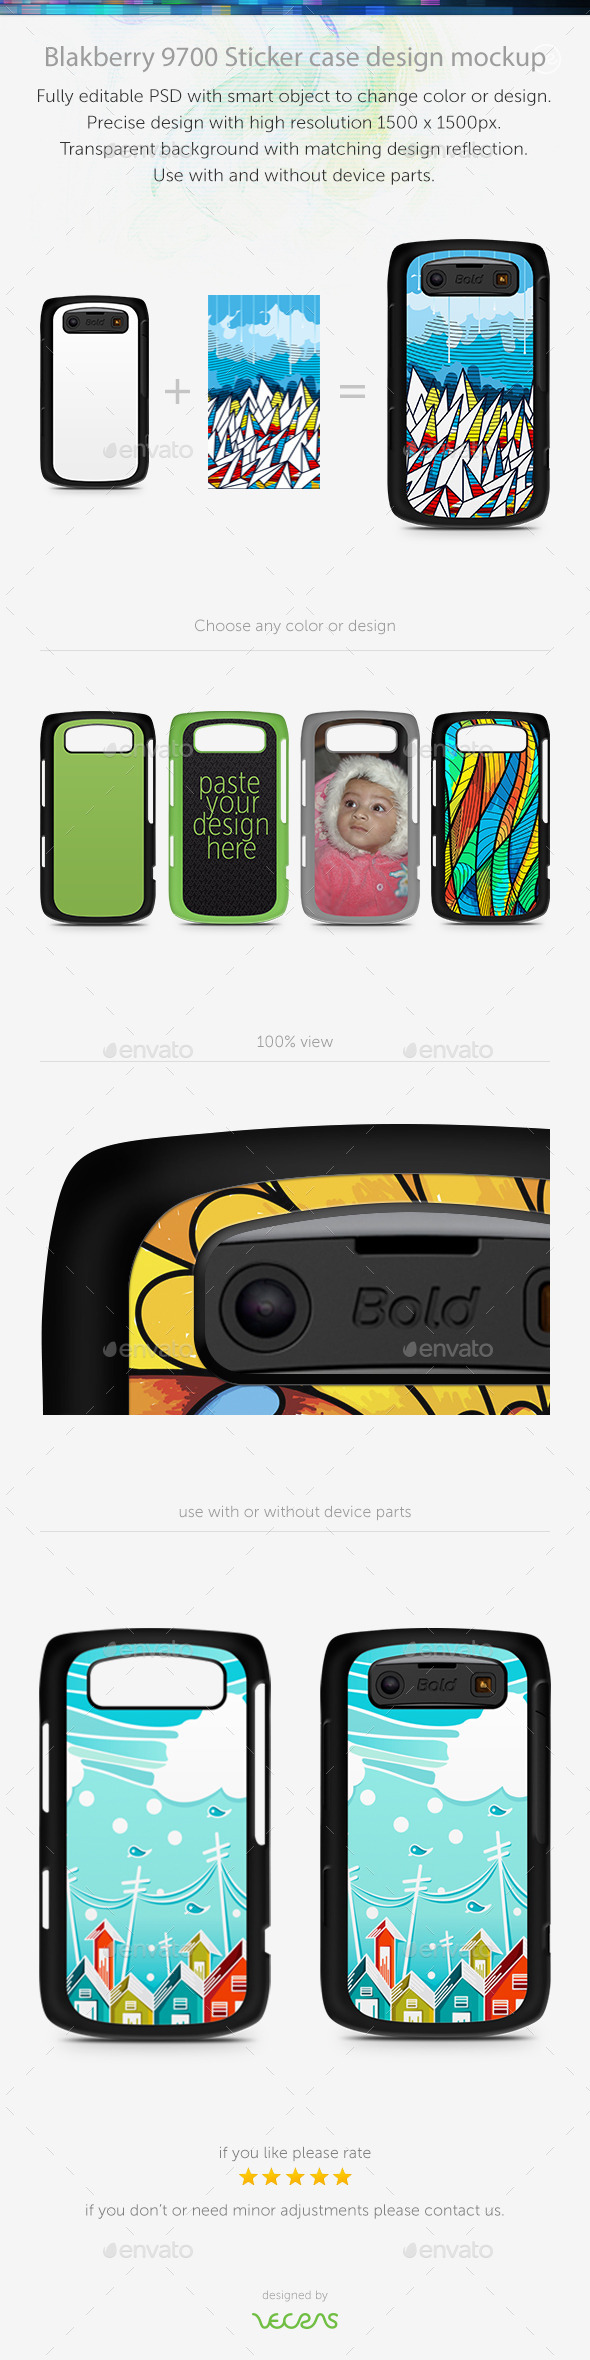 GraphicRiver Blakberry 9700 Sticker Case Design Mockup 10793890